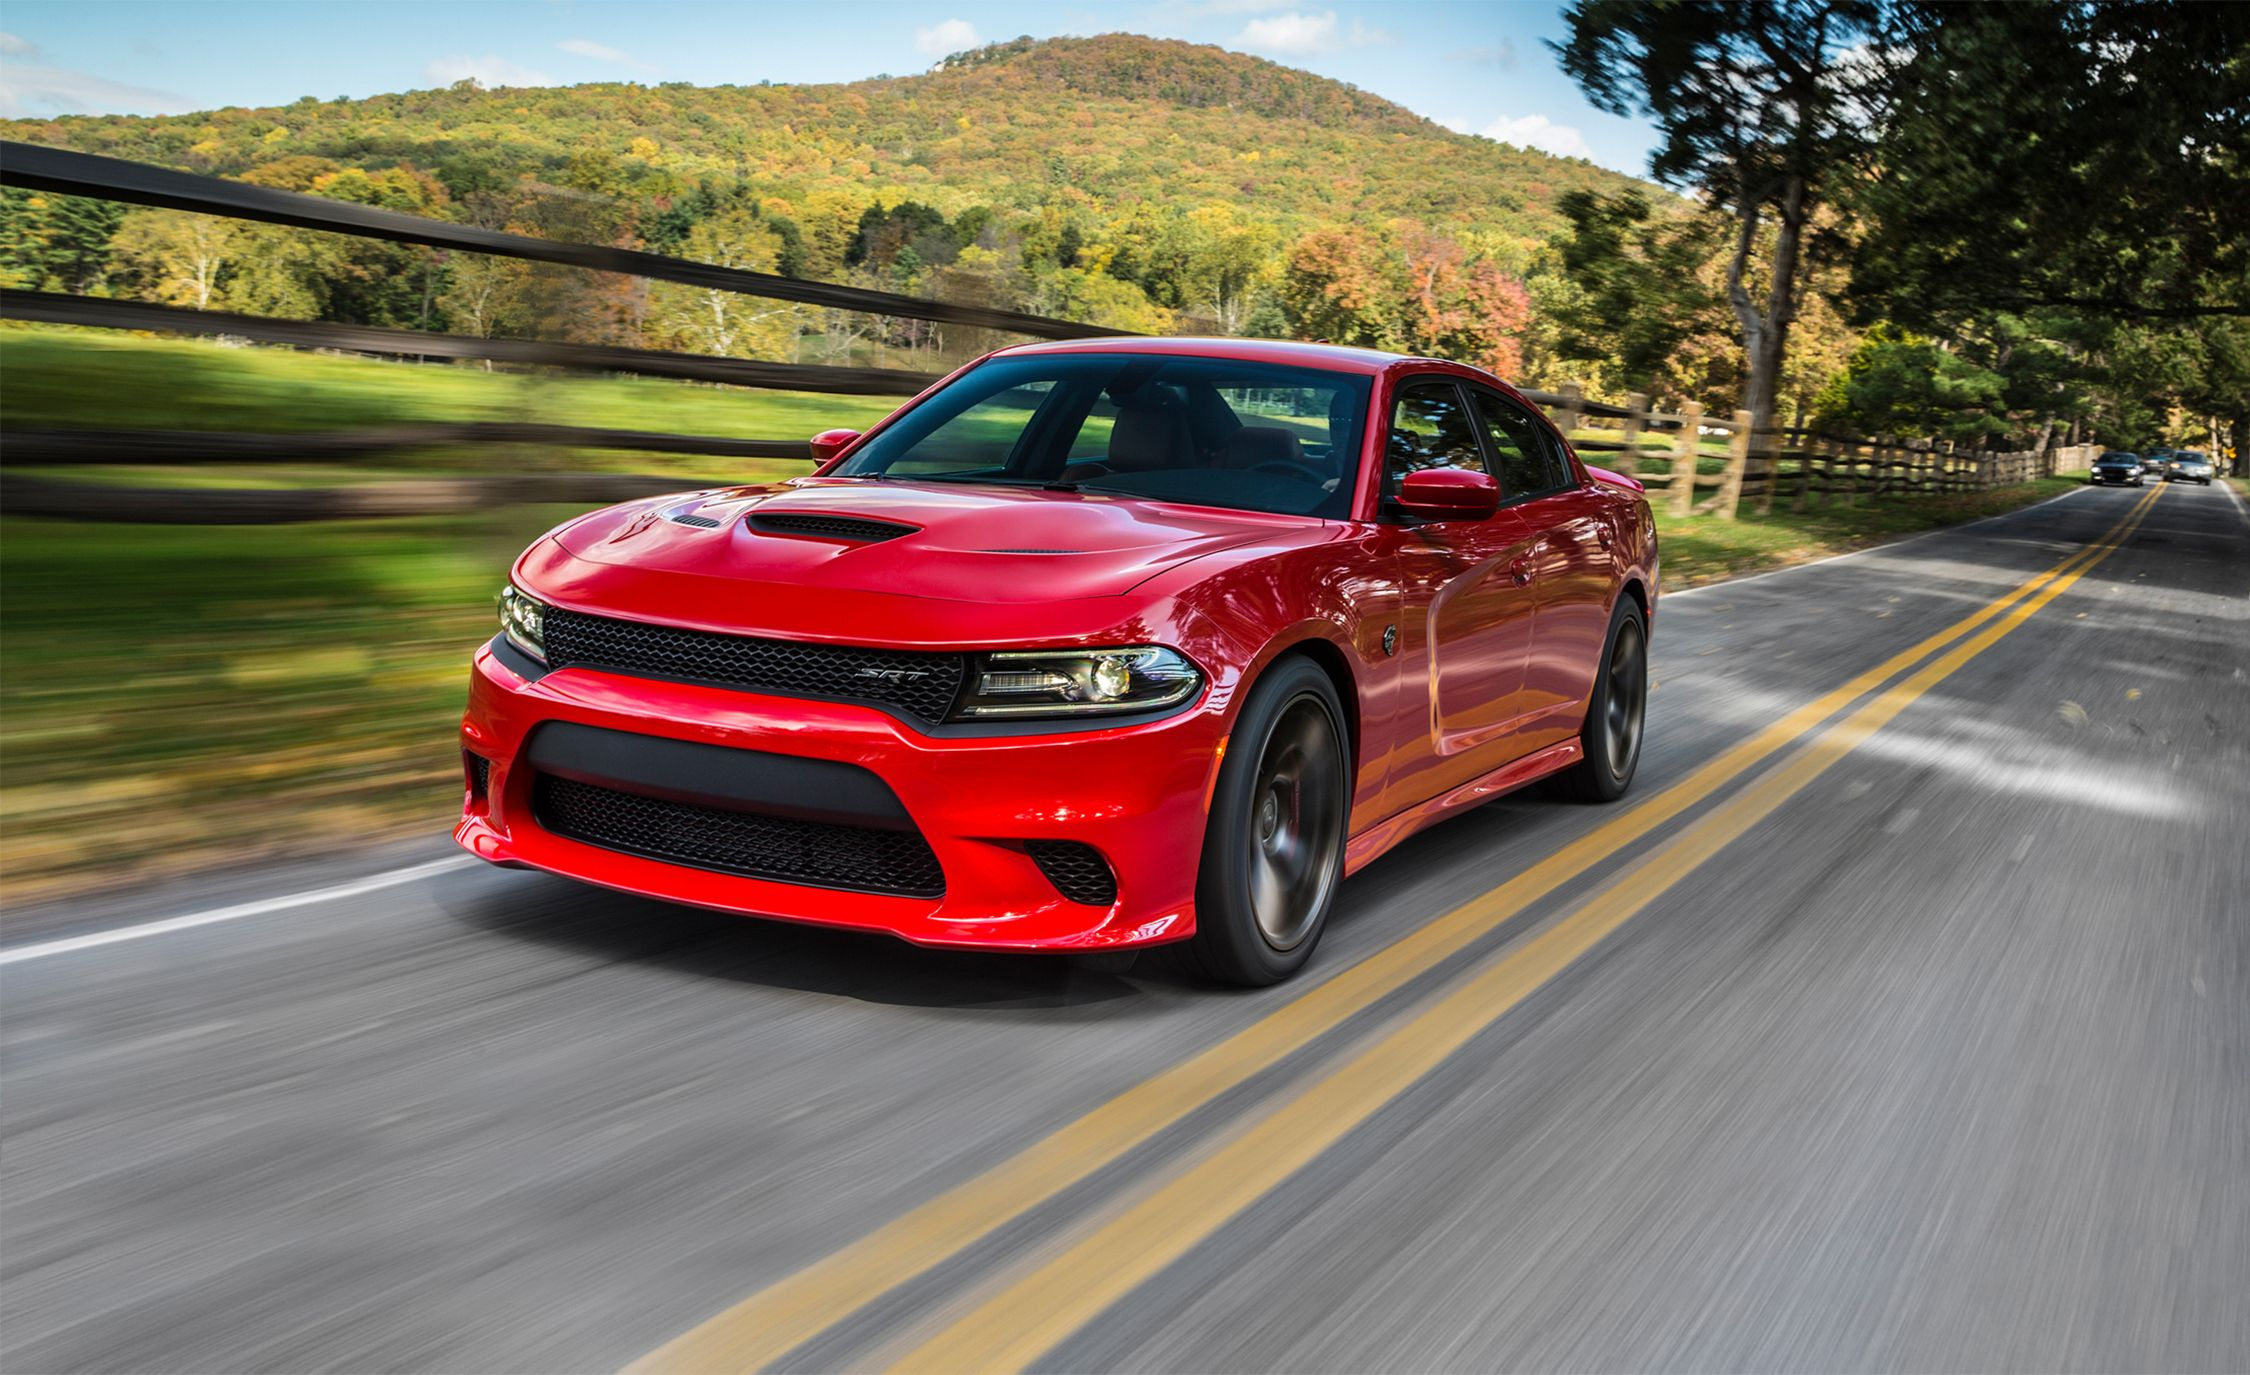 Dodge Charger Srt Srt Hellcat Reviews Dodge Charger